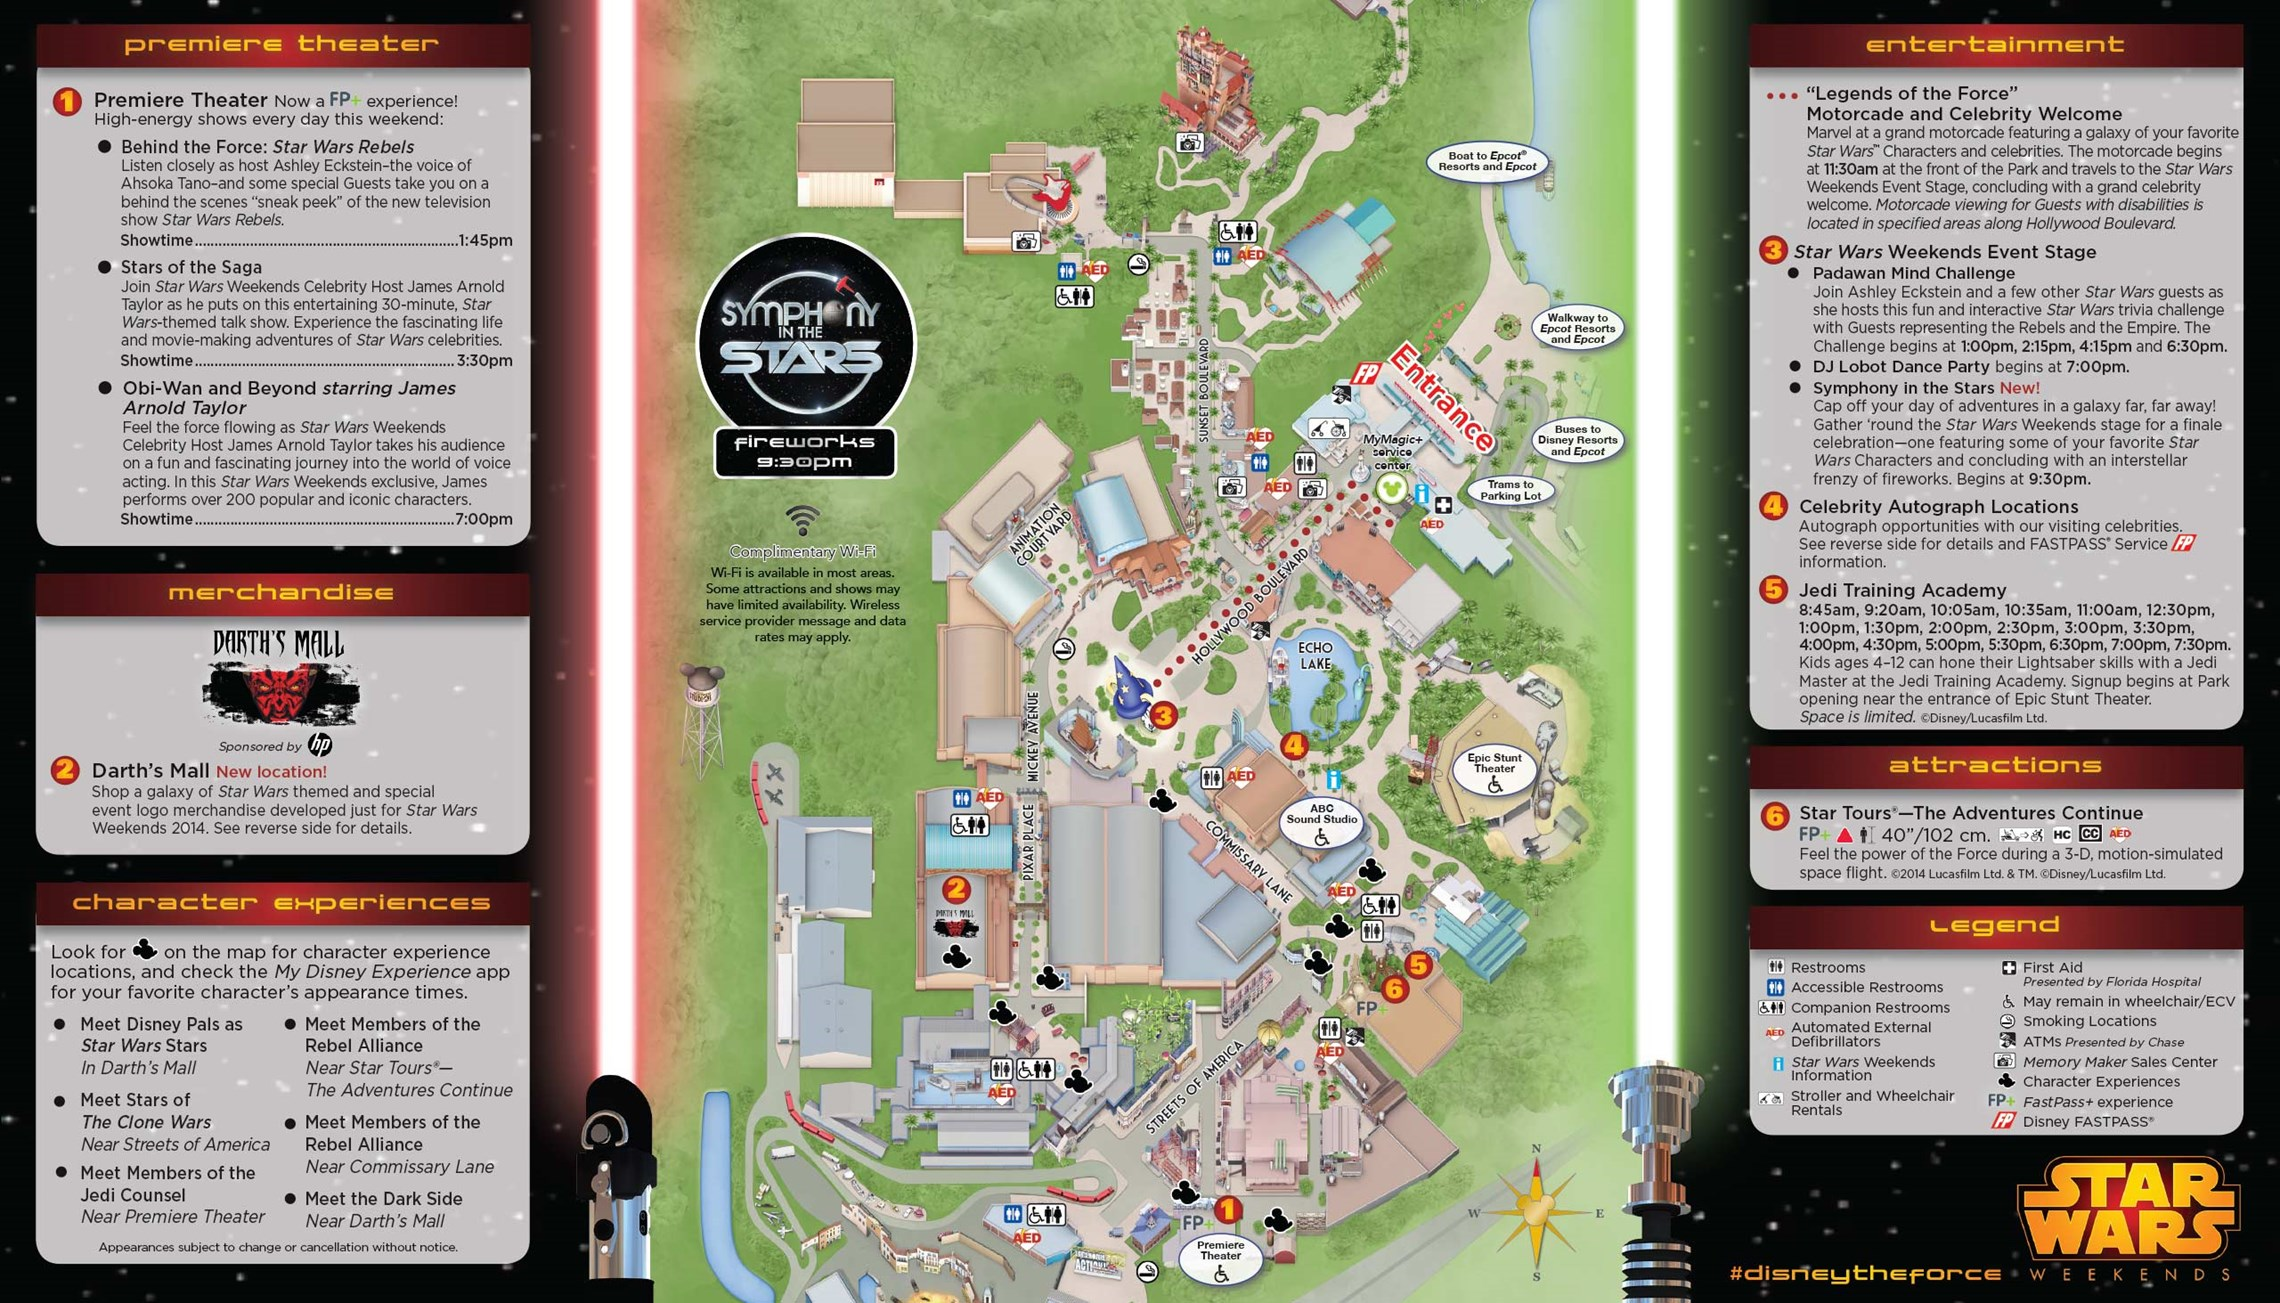 2014 Star Wars Weekends May 16-18 Weekend 1 guide map